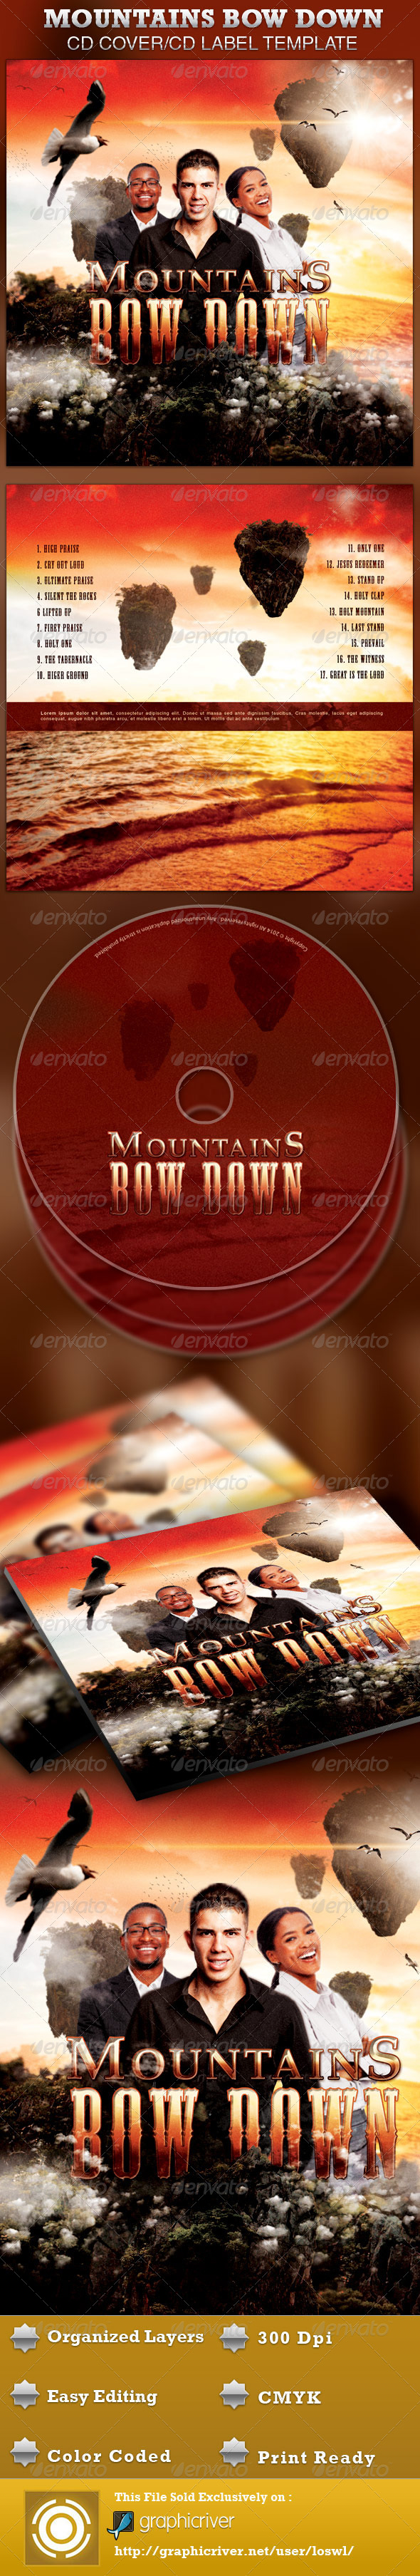 GraphicRiver Mountains Bow Down CD Artwork Template 4255178